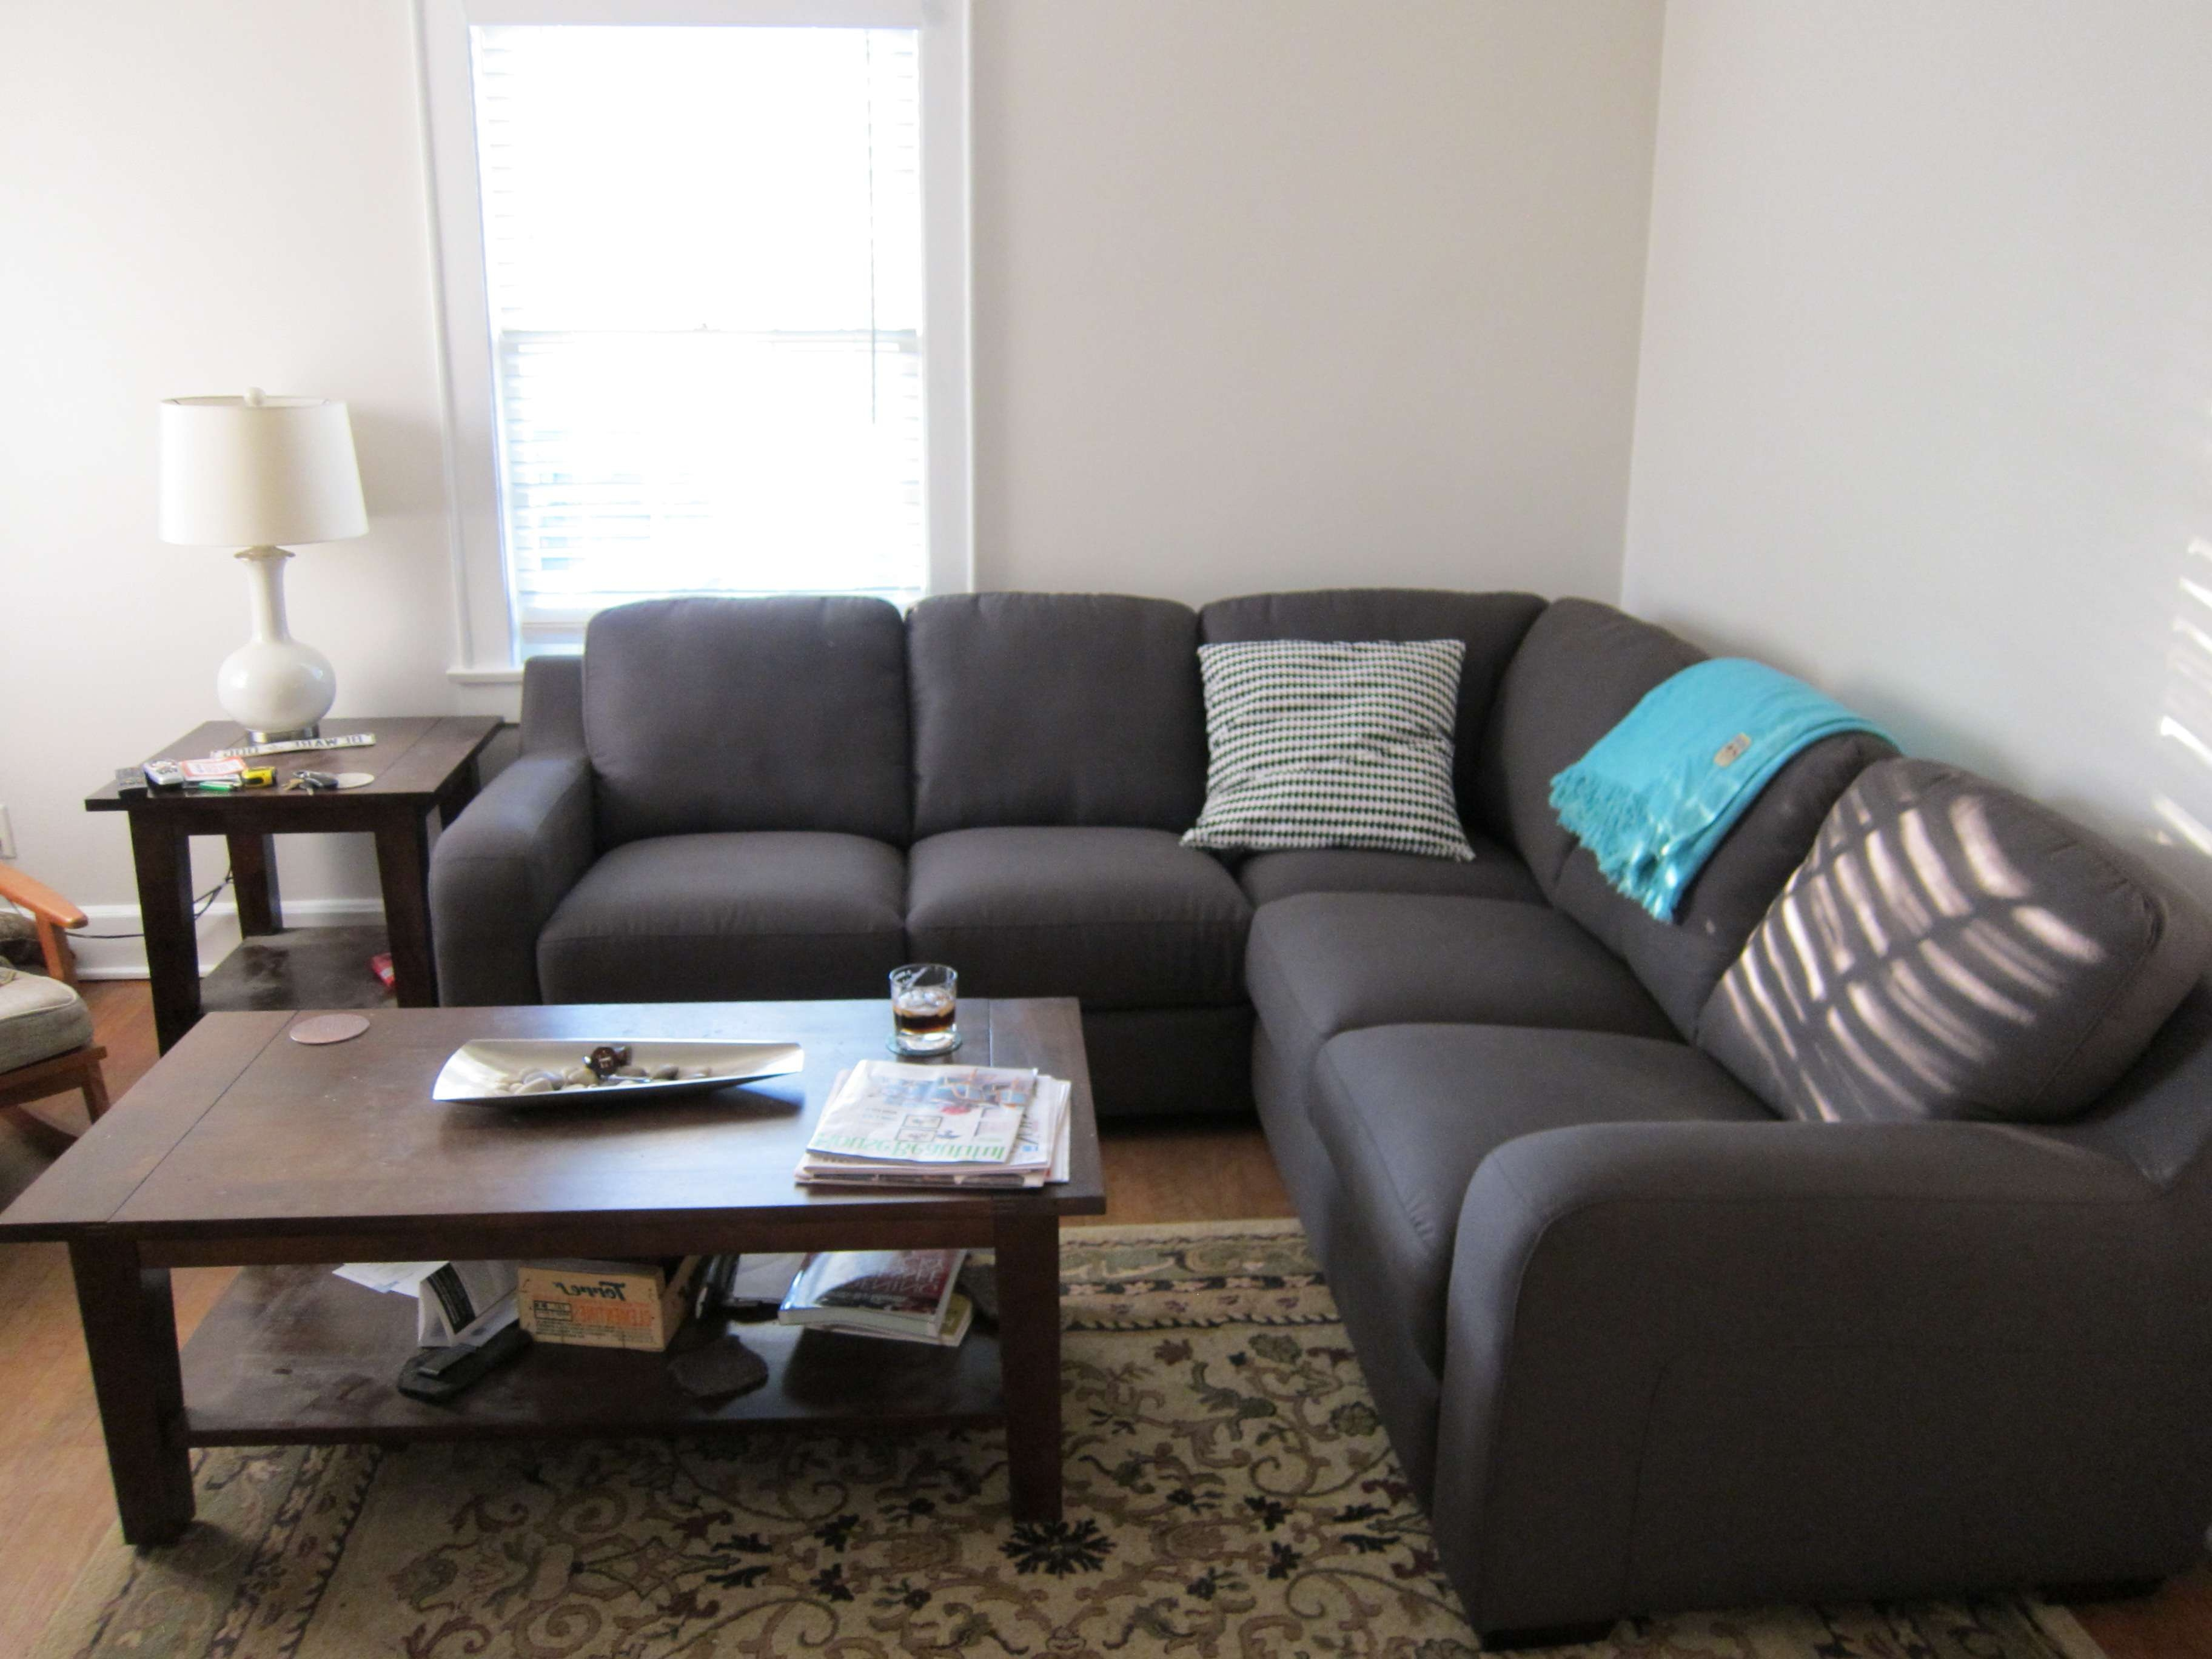 Coffee Table For Sectional Sofa With Chaise • Coffee Table Ideas Intended For Trendy Coffee Table For Sectional Sofa (View 9 of 20)